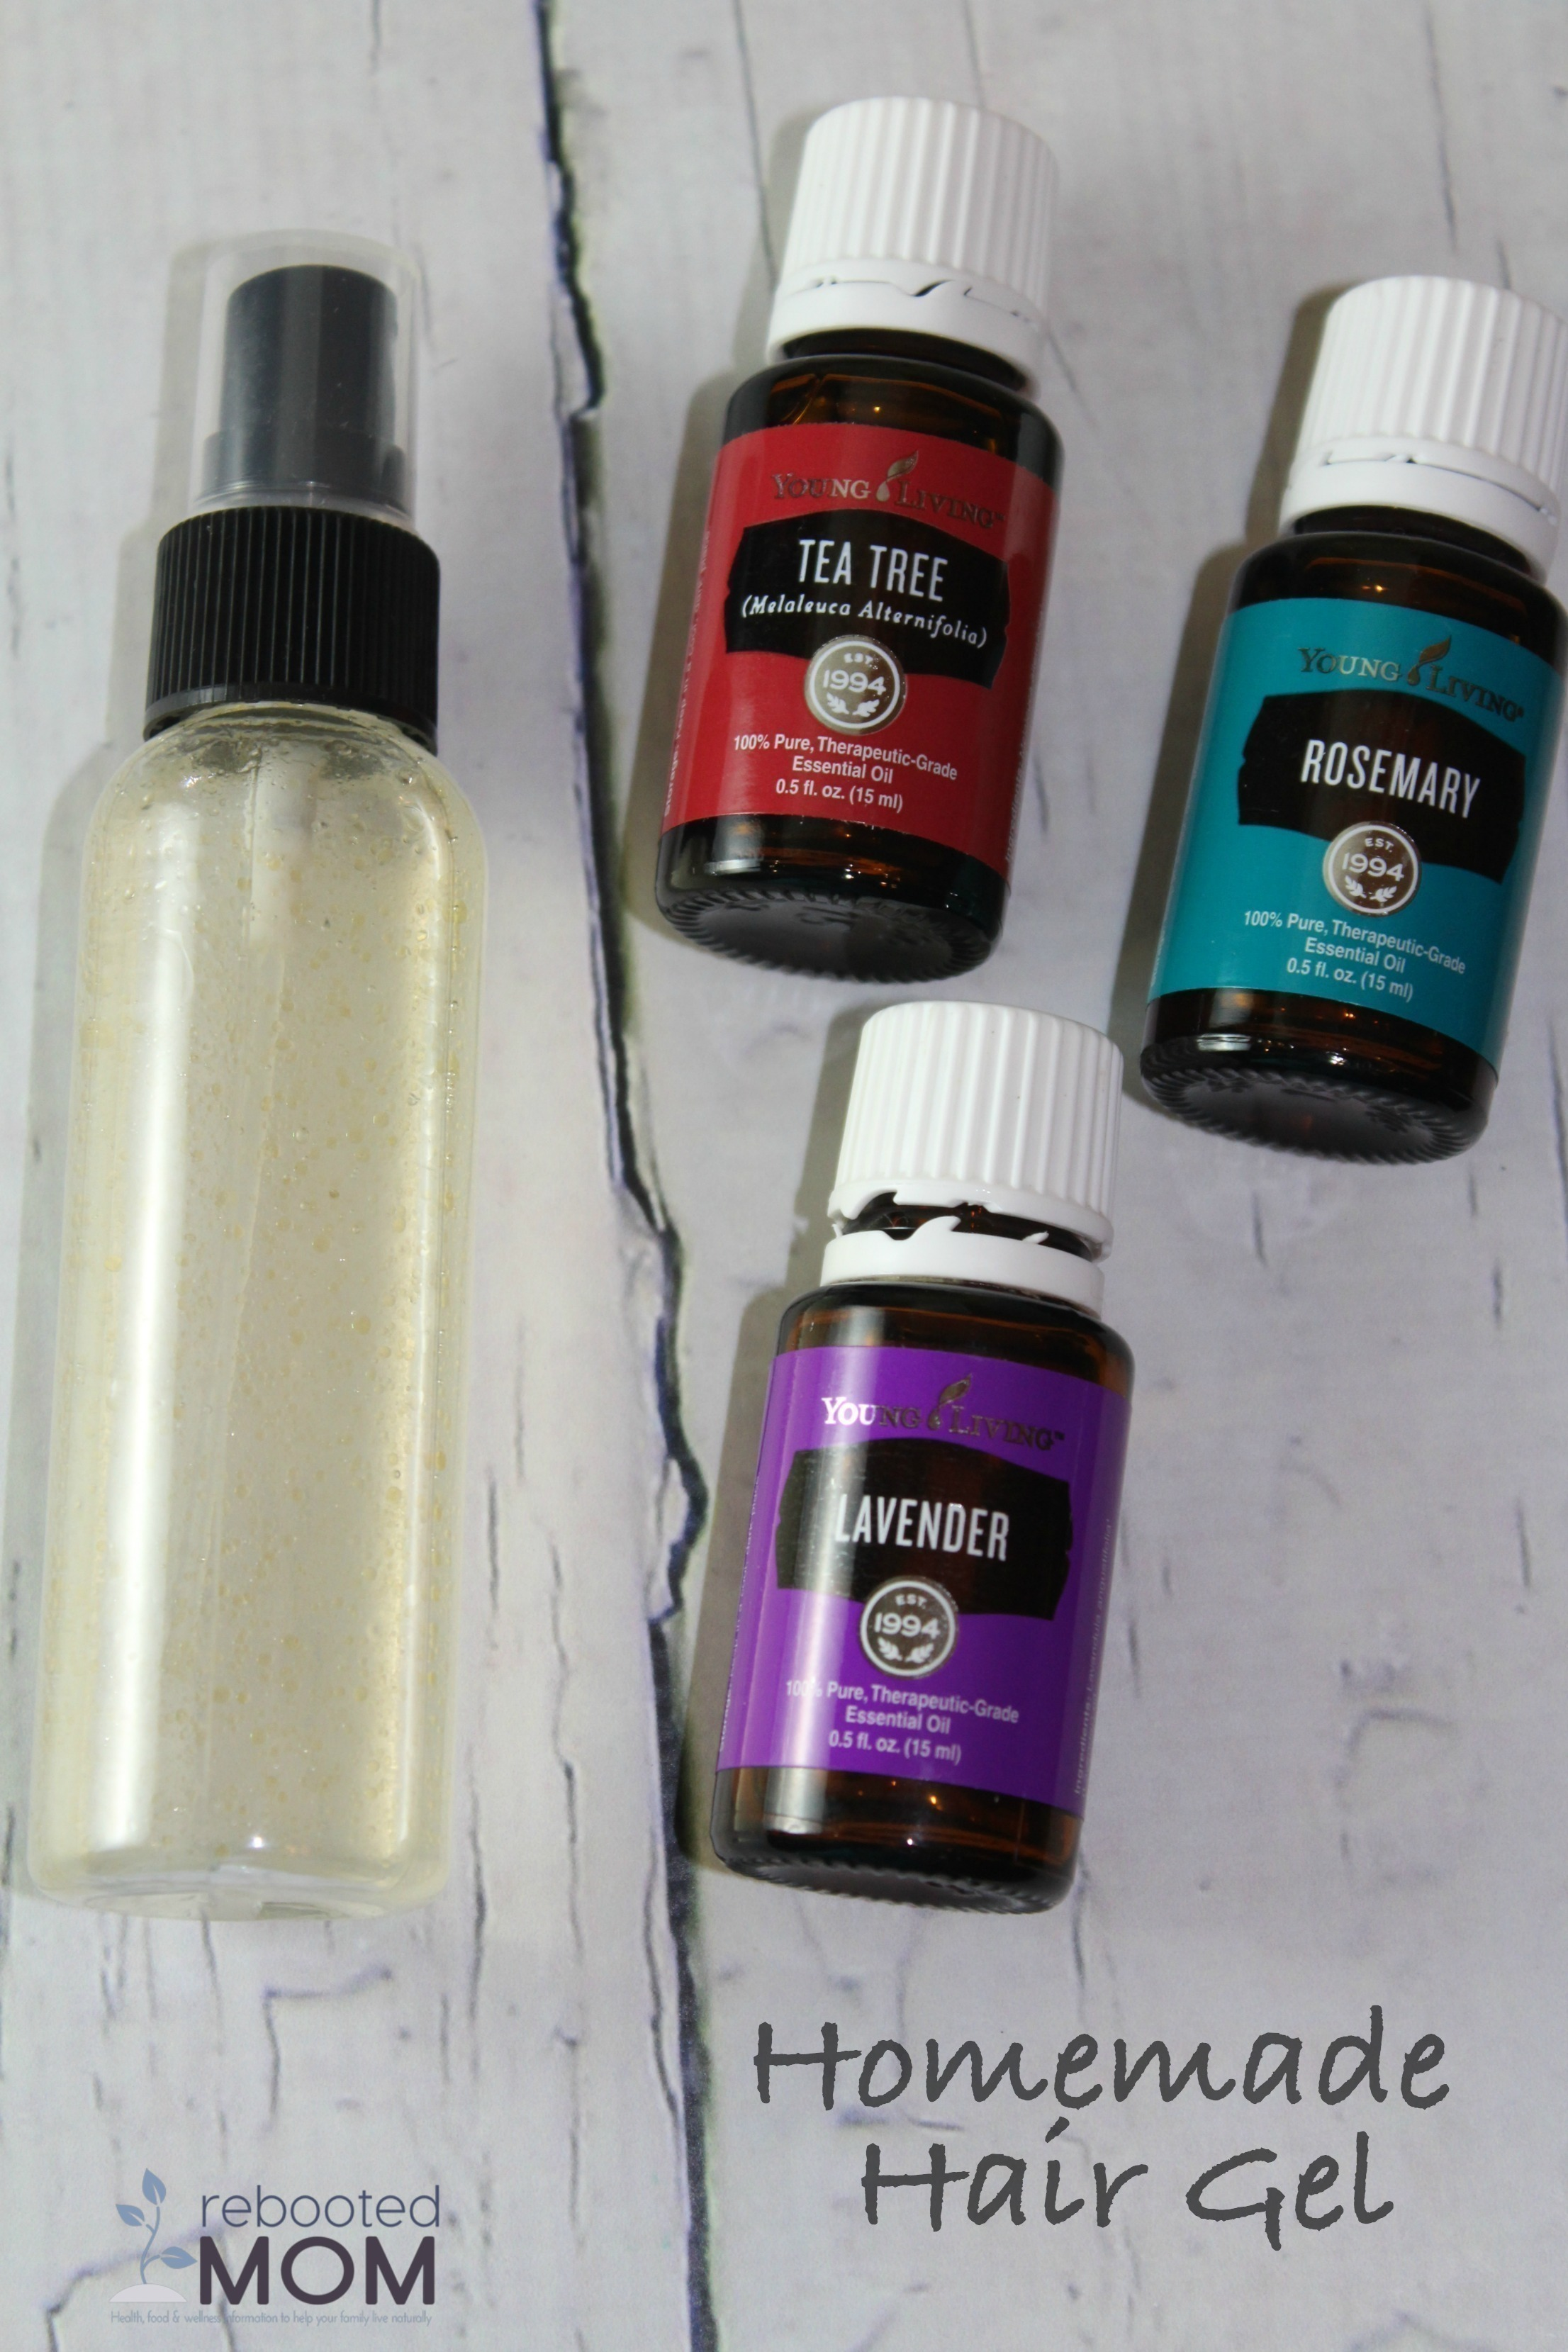 Homemade Hair Gel with Essential Oils